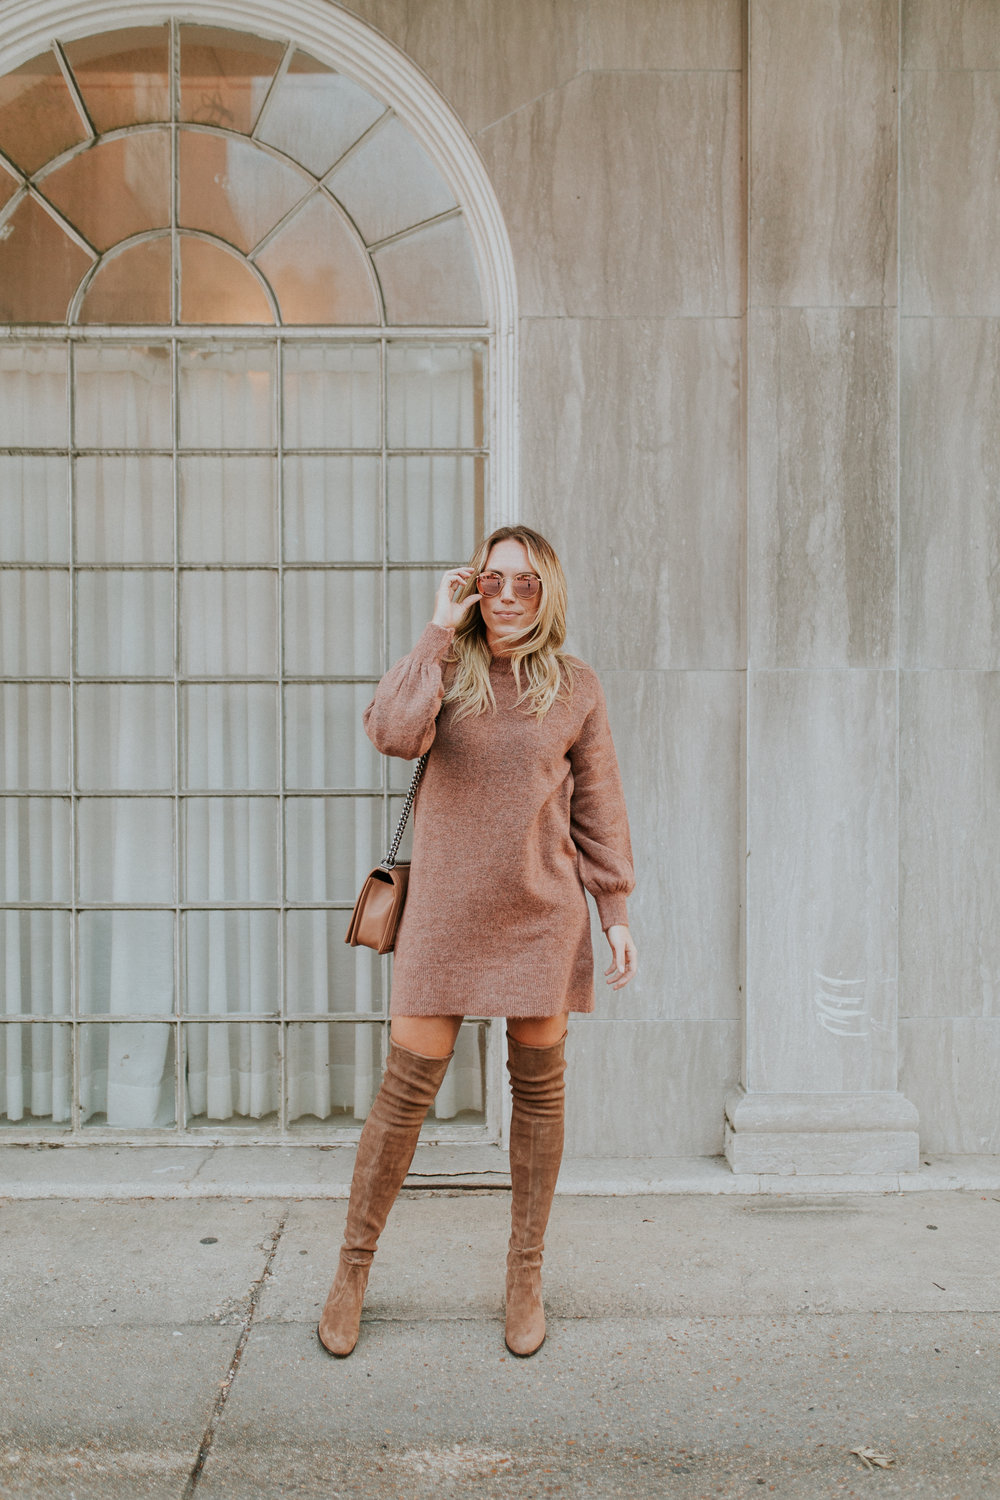 Blogger Gracefully Taylored in Topshop Sweater Dress and Stuart Weitzman Boots(16).jpg